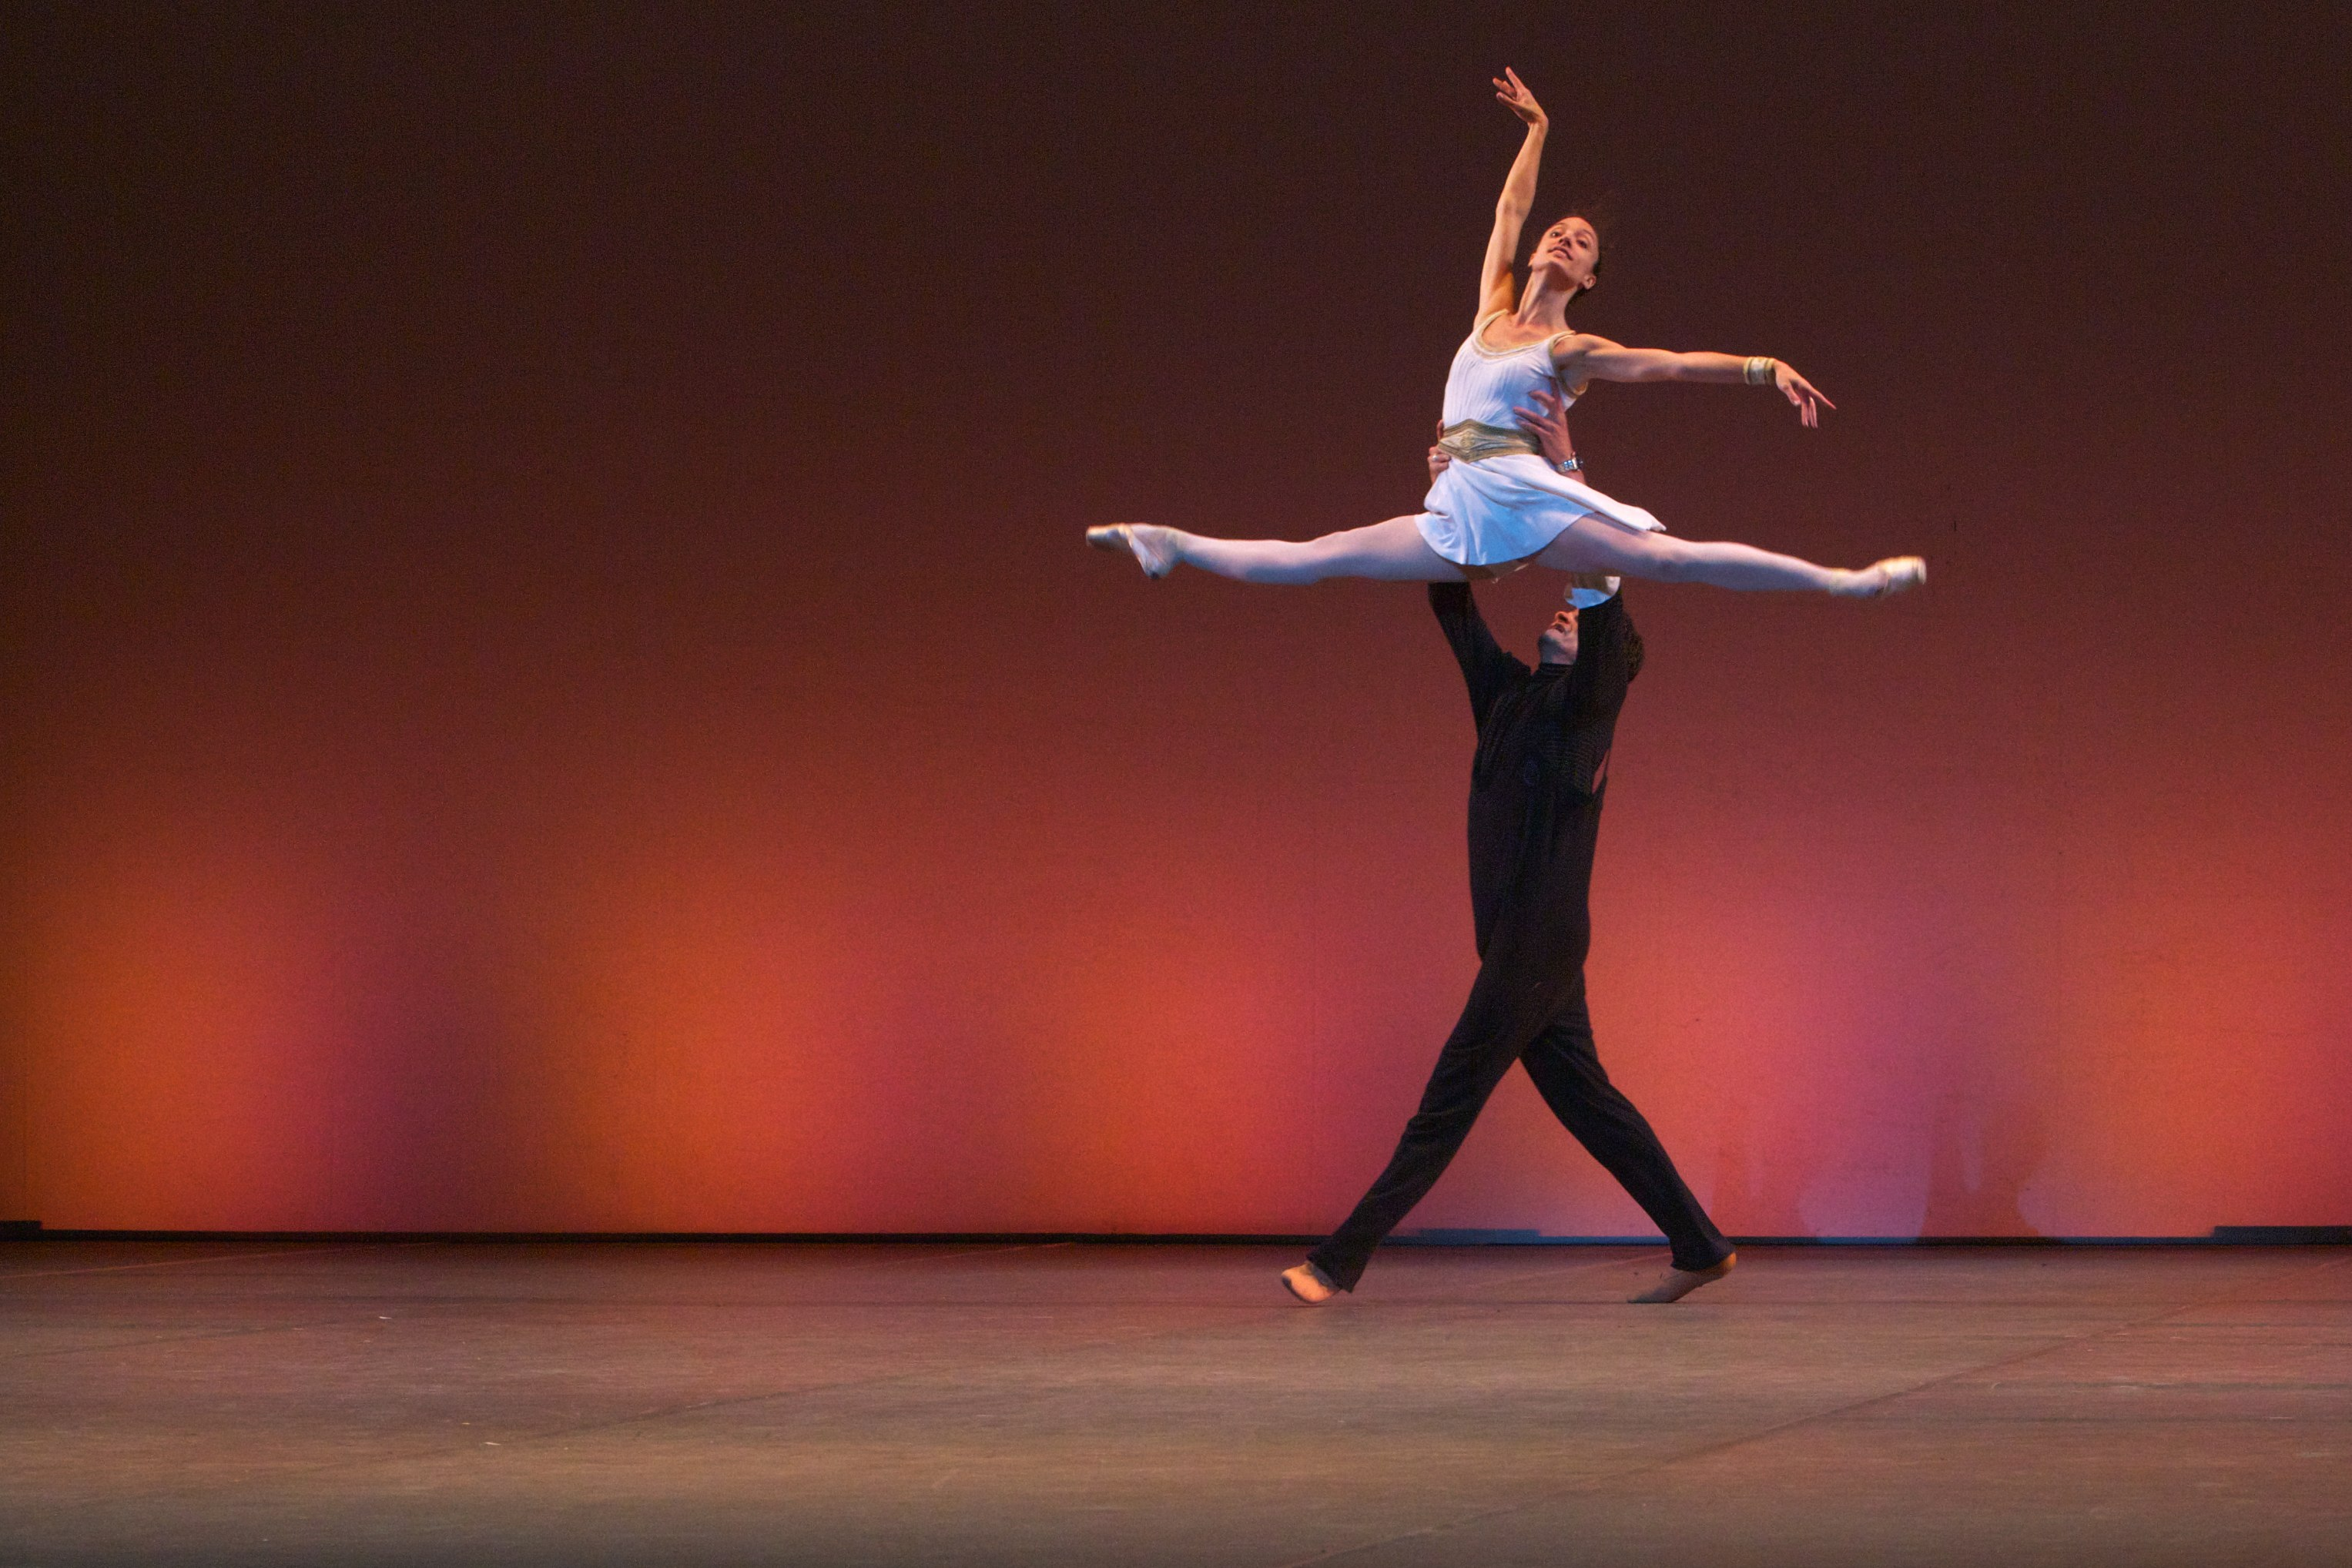 one ballet dancer lifts another very high on stage